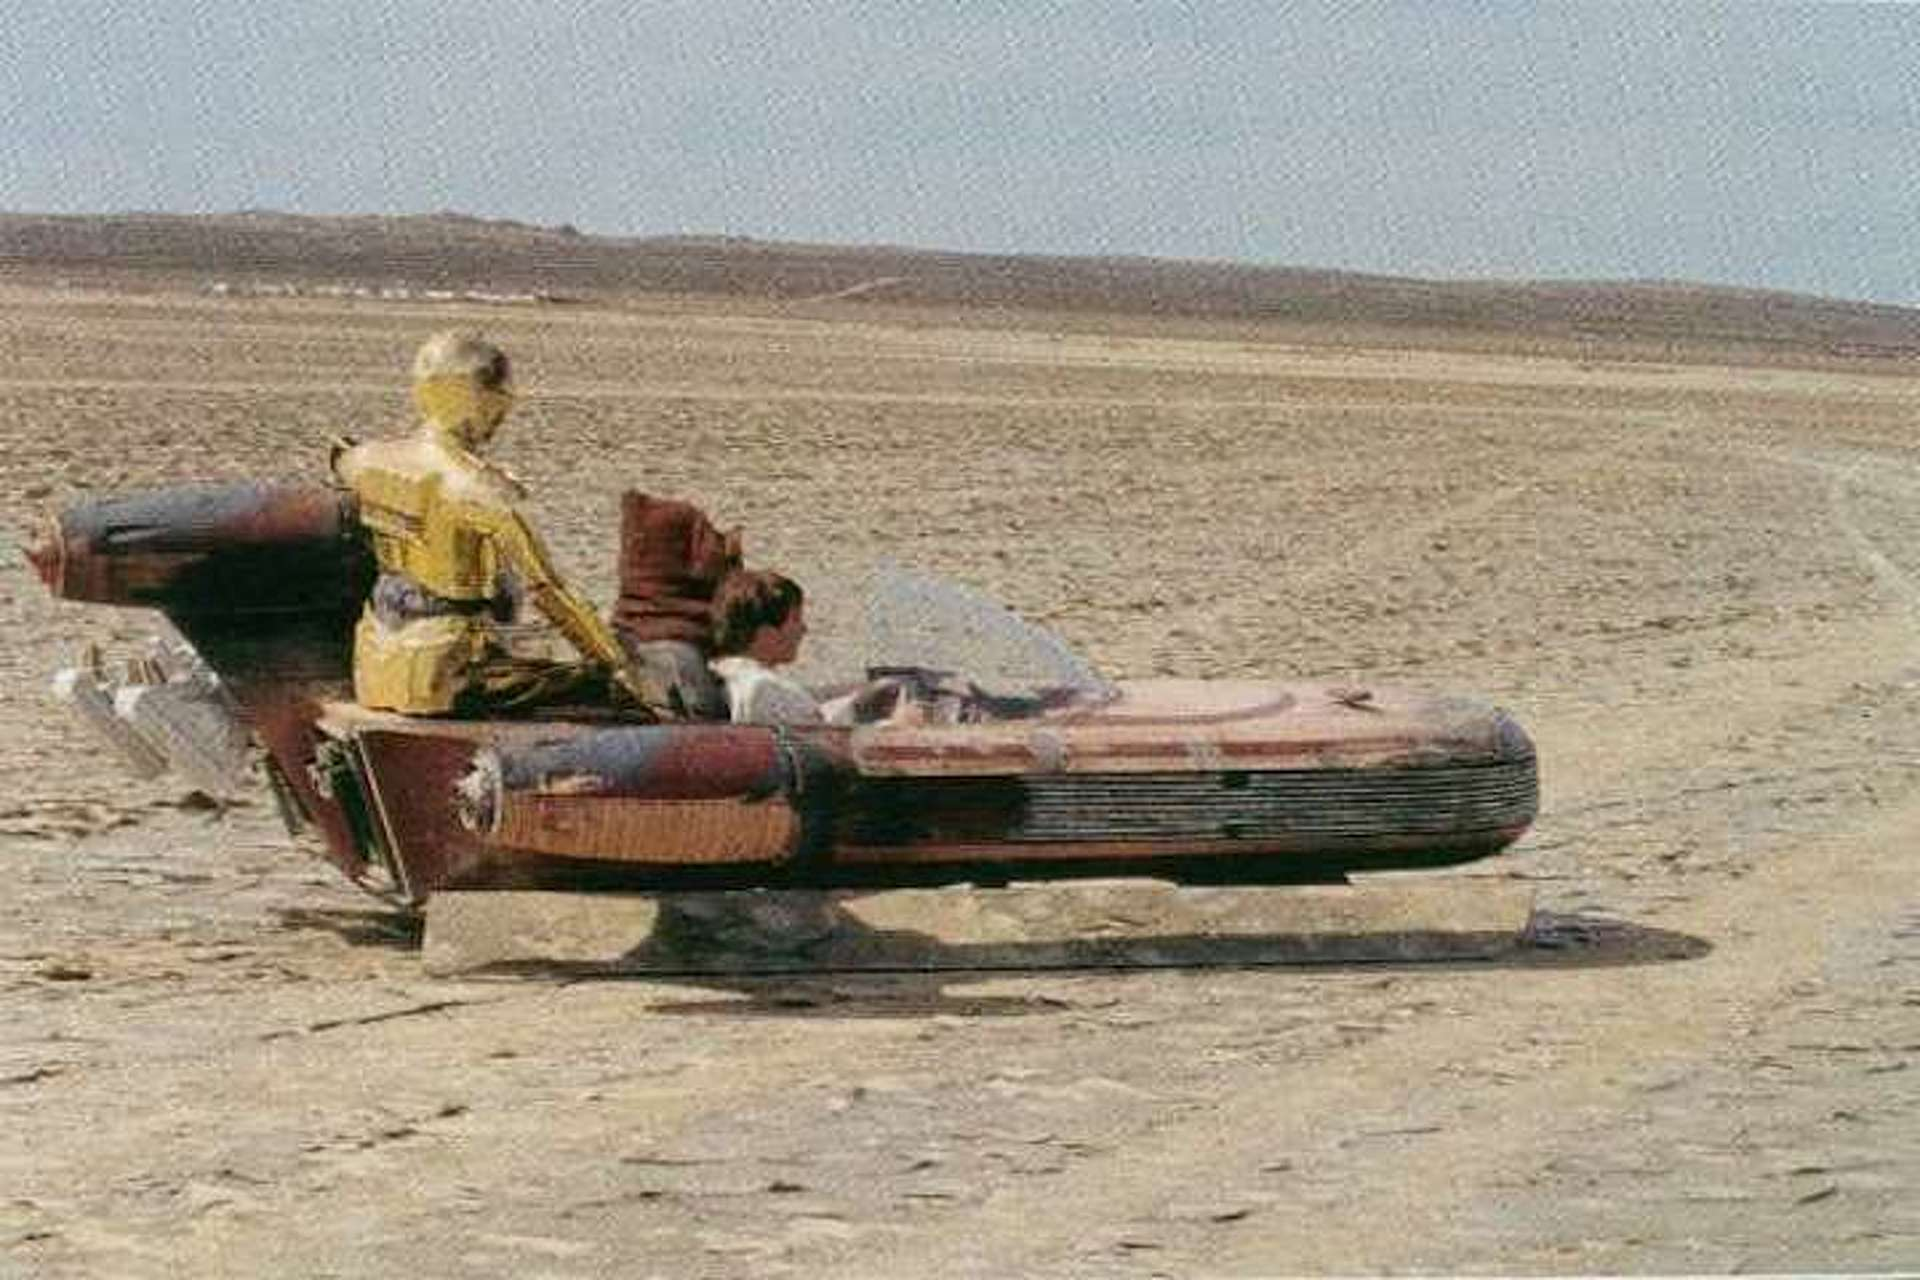 The Star Wars Landspeeder: Will it Ever Really Exist?